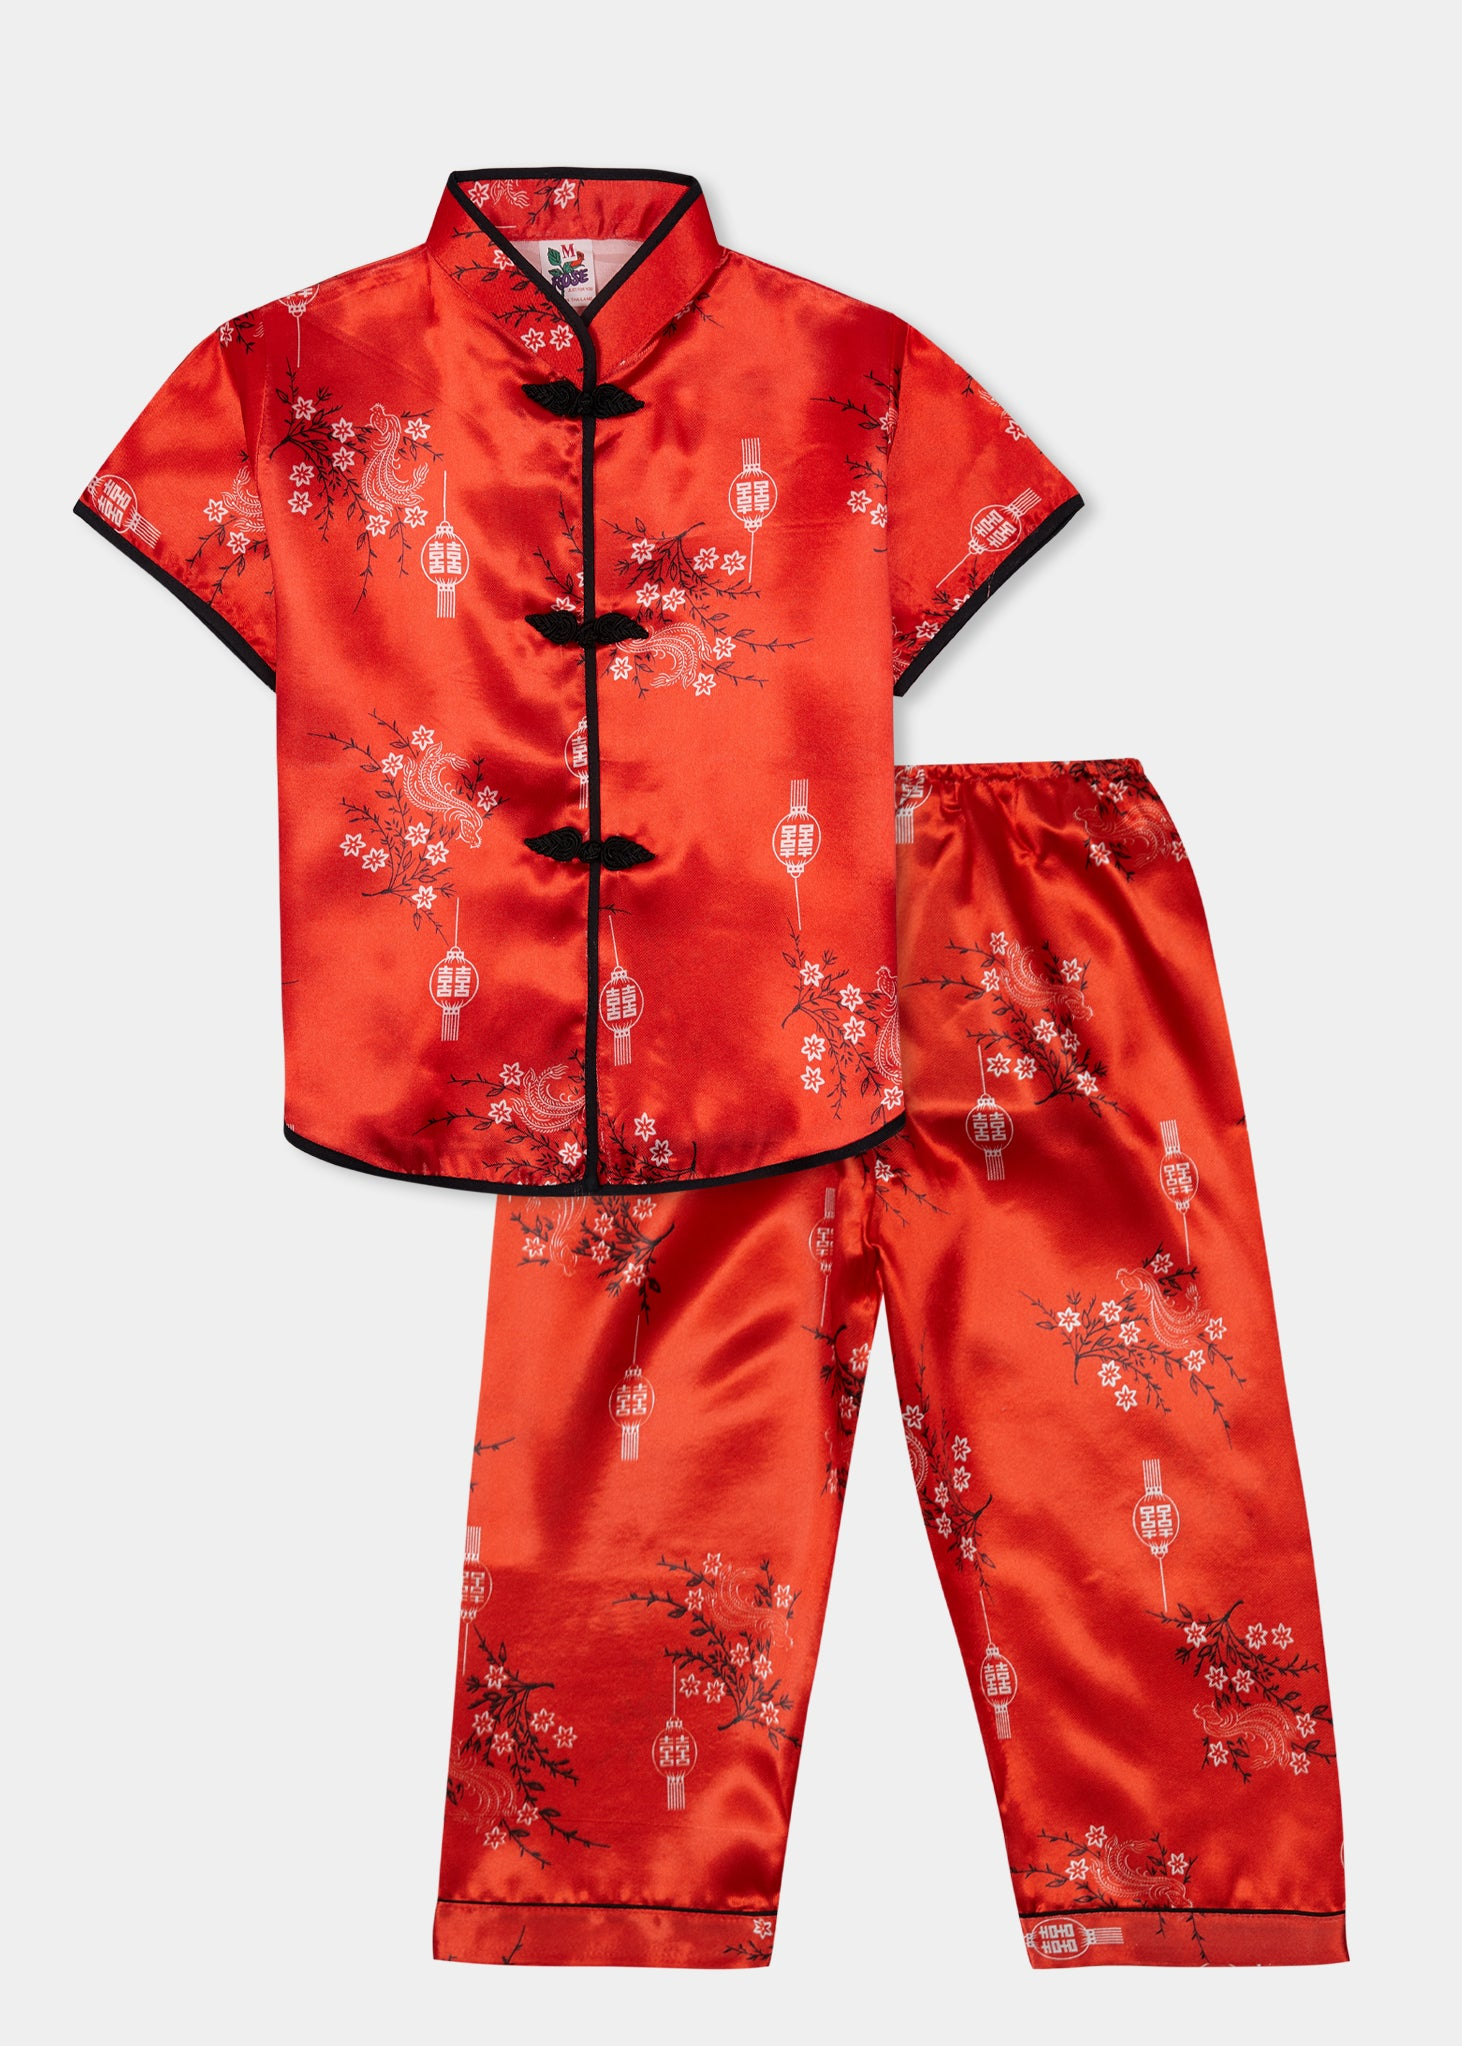 Traditionally styled pyjamas with Chinese features of mandarin collar and flower and knot frog fastenings. Manufactured in a stunning red silky rayon/polyester with a bird of paradise and Chinese lantern print - a symbol of joy and good fortune. Pyjama top has short sleeves, contrast bound mandarin collar and centre front opening which closes with flower and knot frog fastenings. Elasticated waist pyjama bottoms with contrast piped hem cuffs